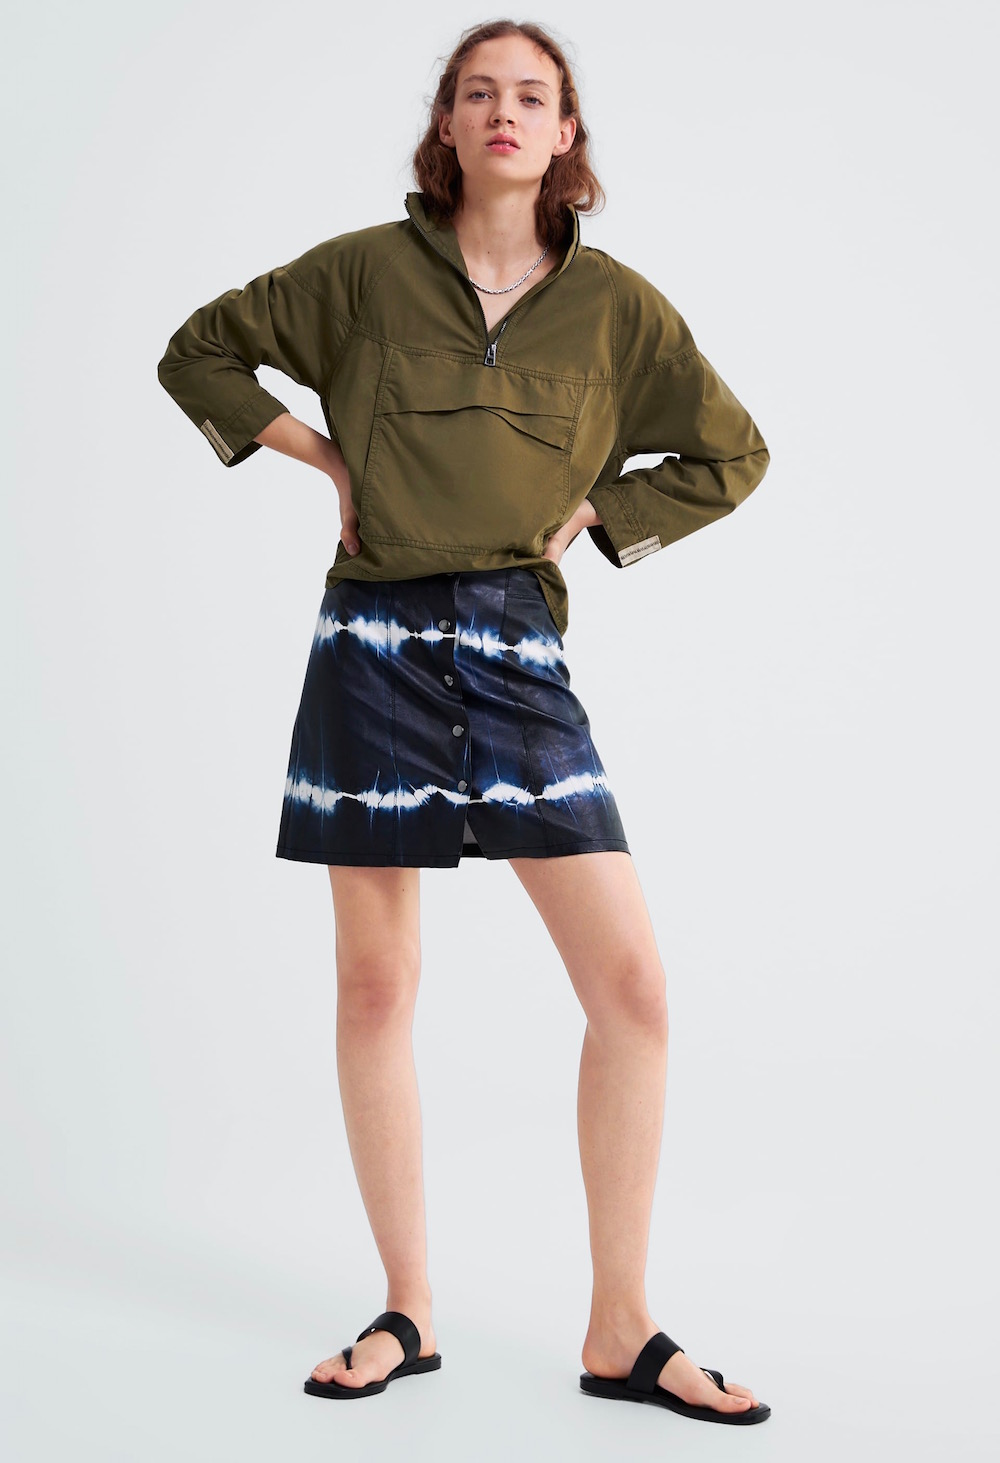 f0c717c83eda 22 Spring Pieces You Can Wear Now and Later - theFashionSpot